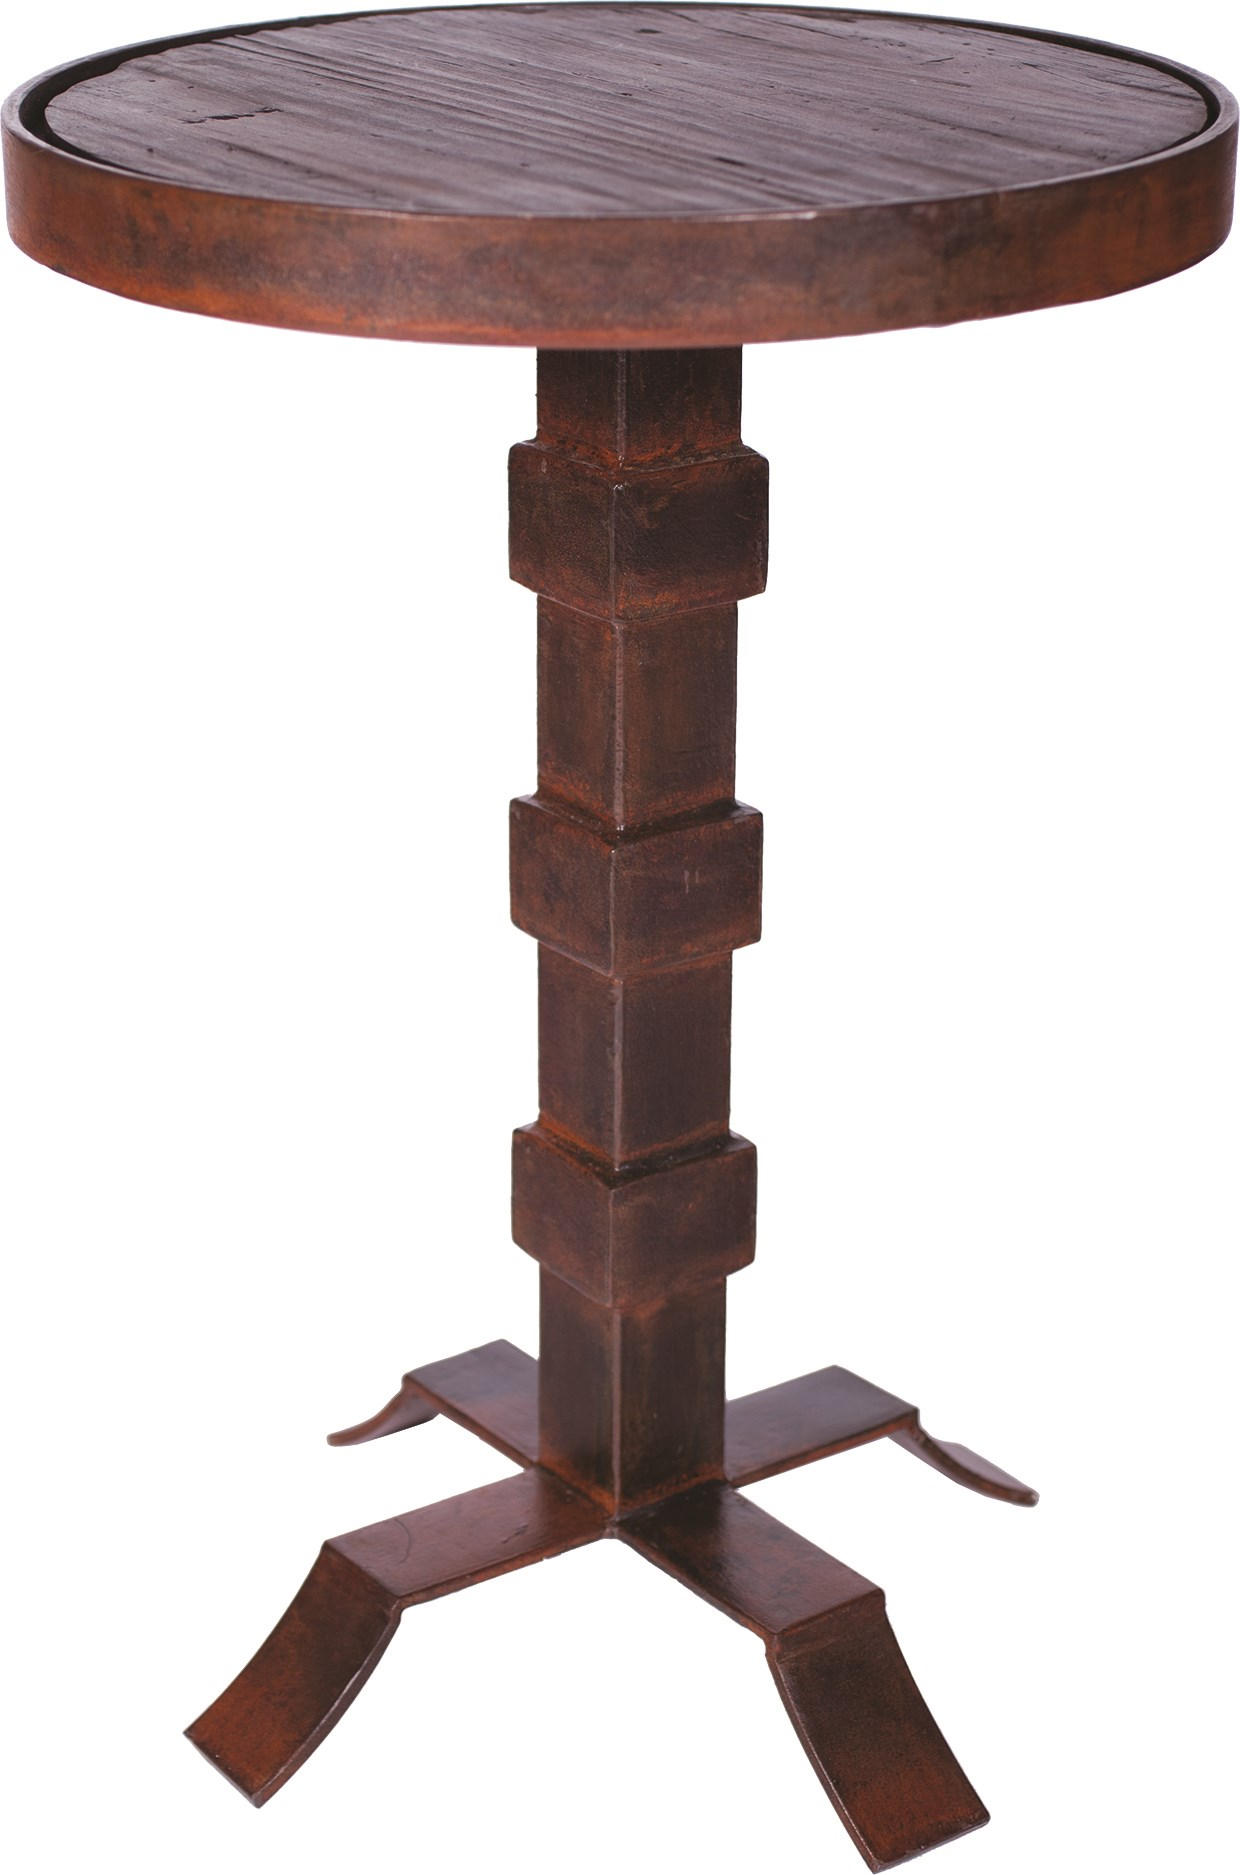 round iron accent table with wood top boulevard urban living set tables covers for outdoor knotty pine chairs pier rugs clearance counter height dining bench astoria patio